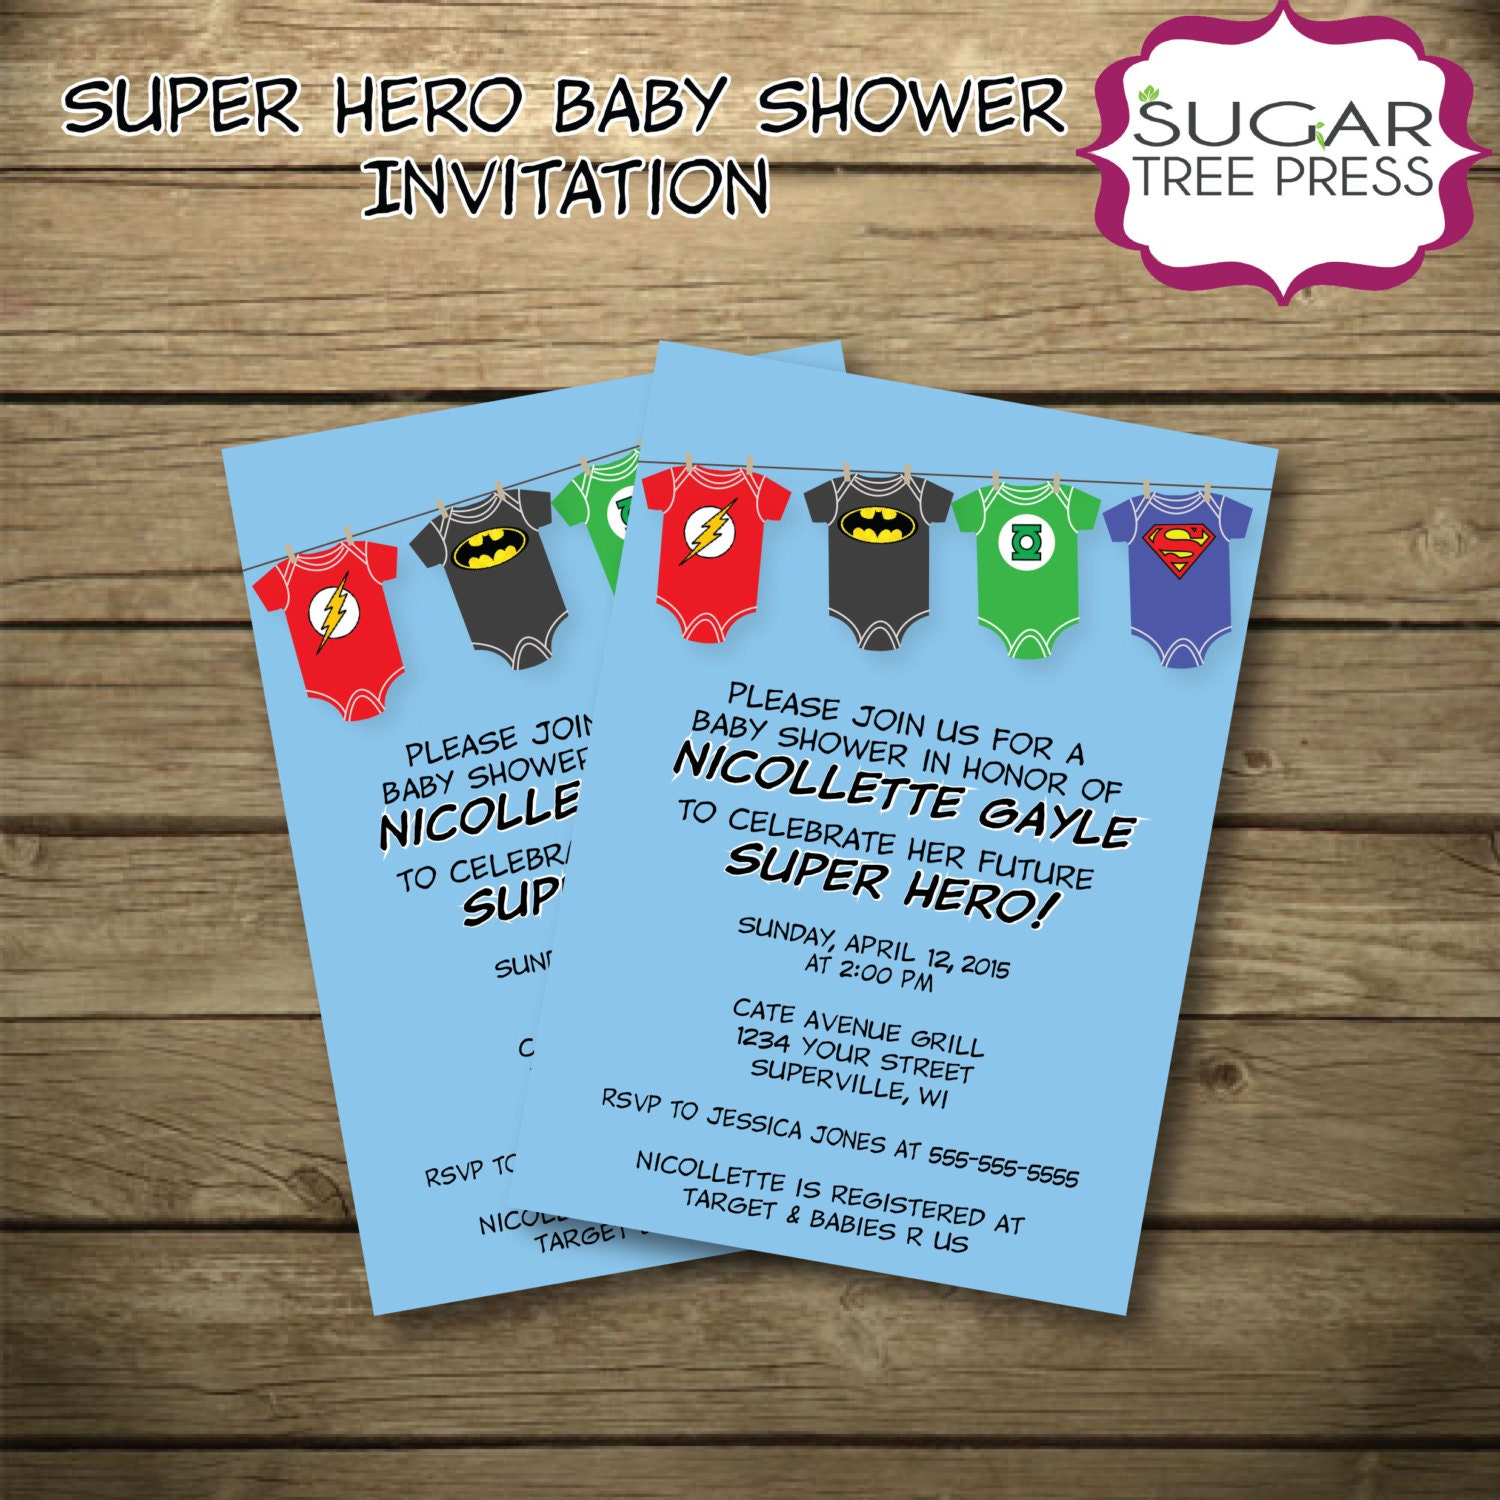 Justice League Invitations Free: Super Hero Justice League Baby Shower Invitation-Printable